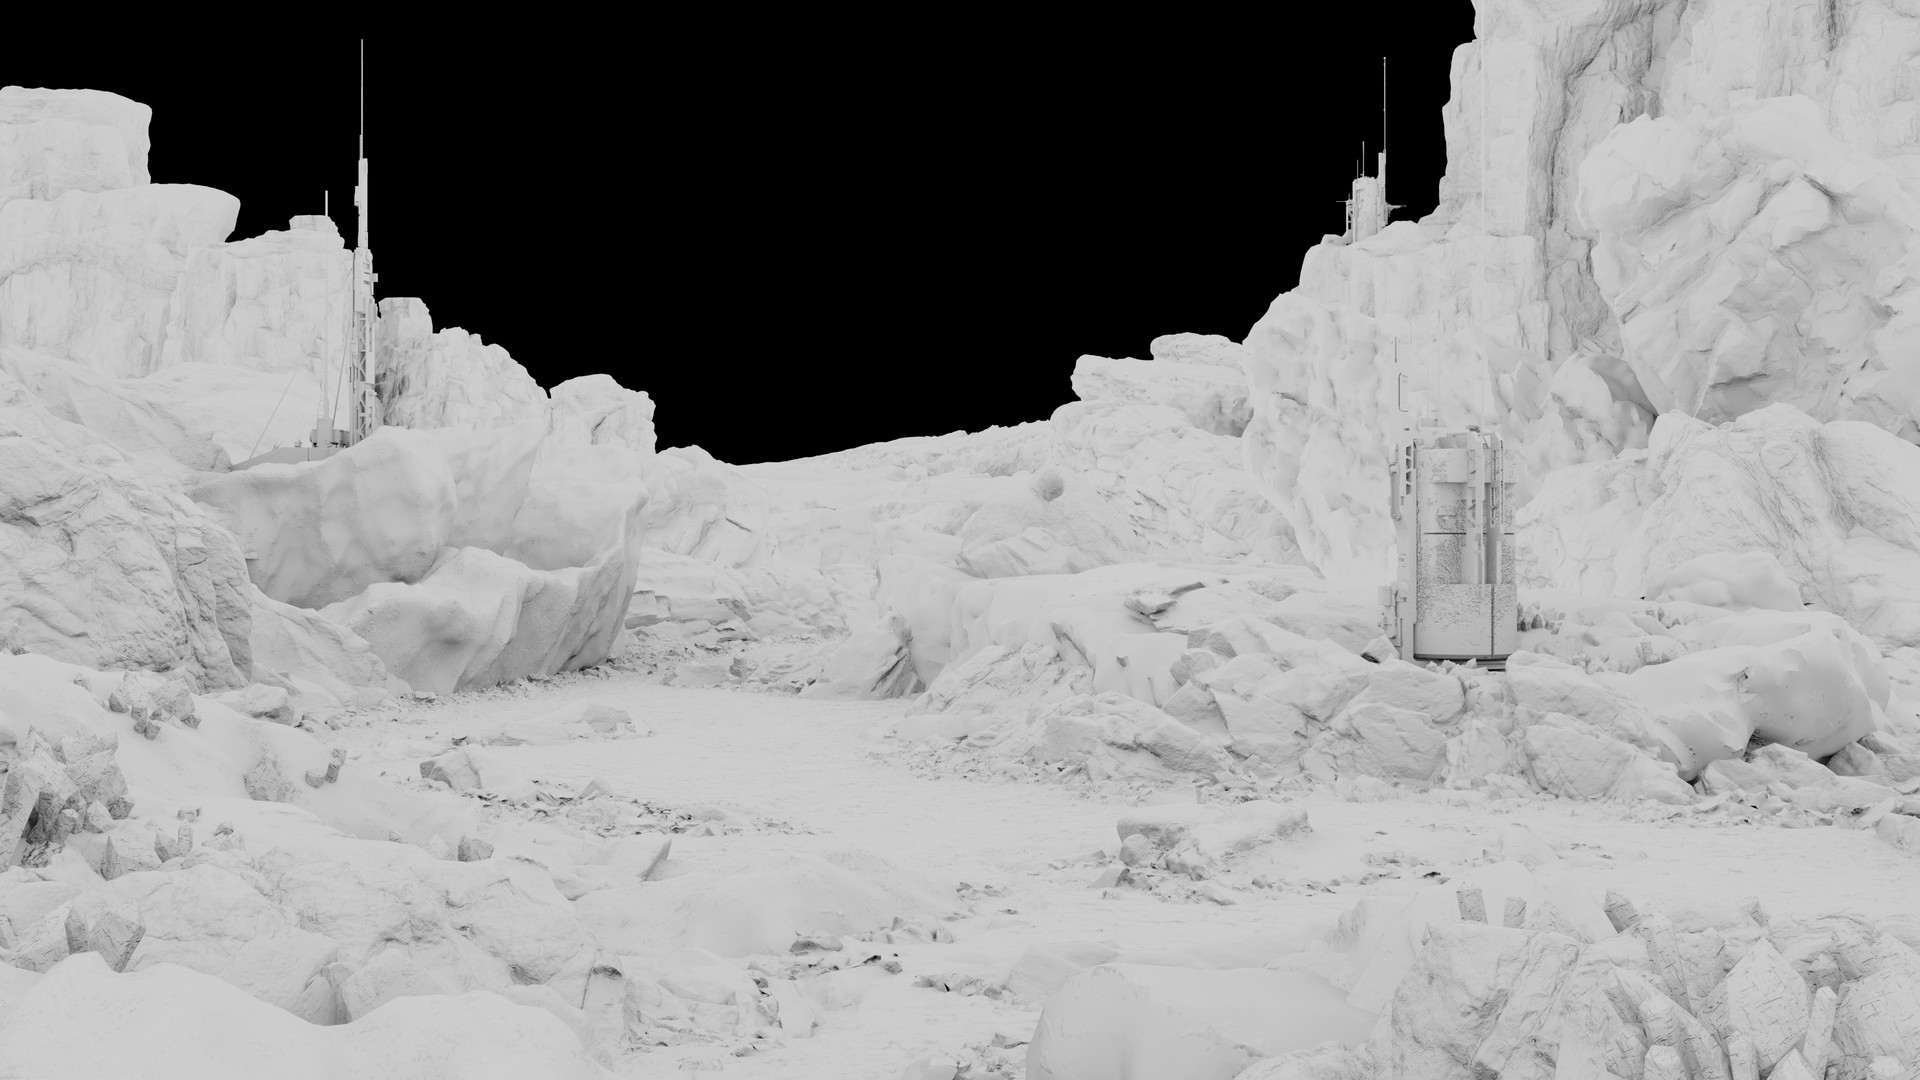 Ambient Occlusion - shows nicely what geometry is used.